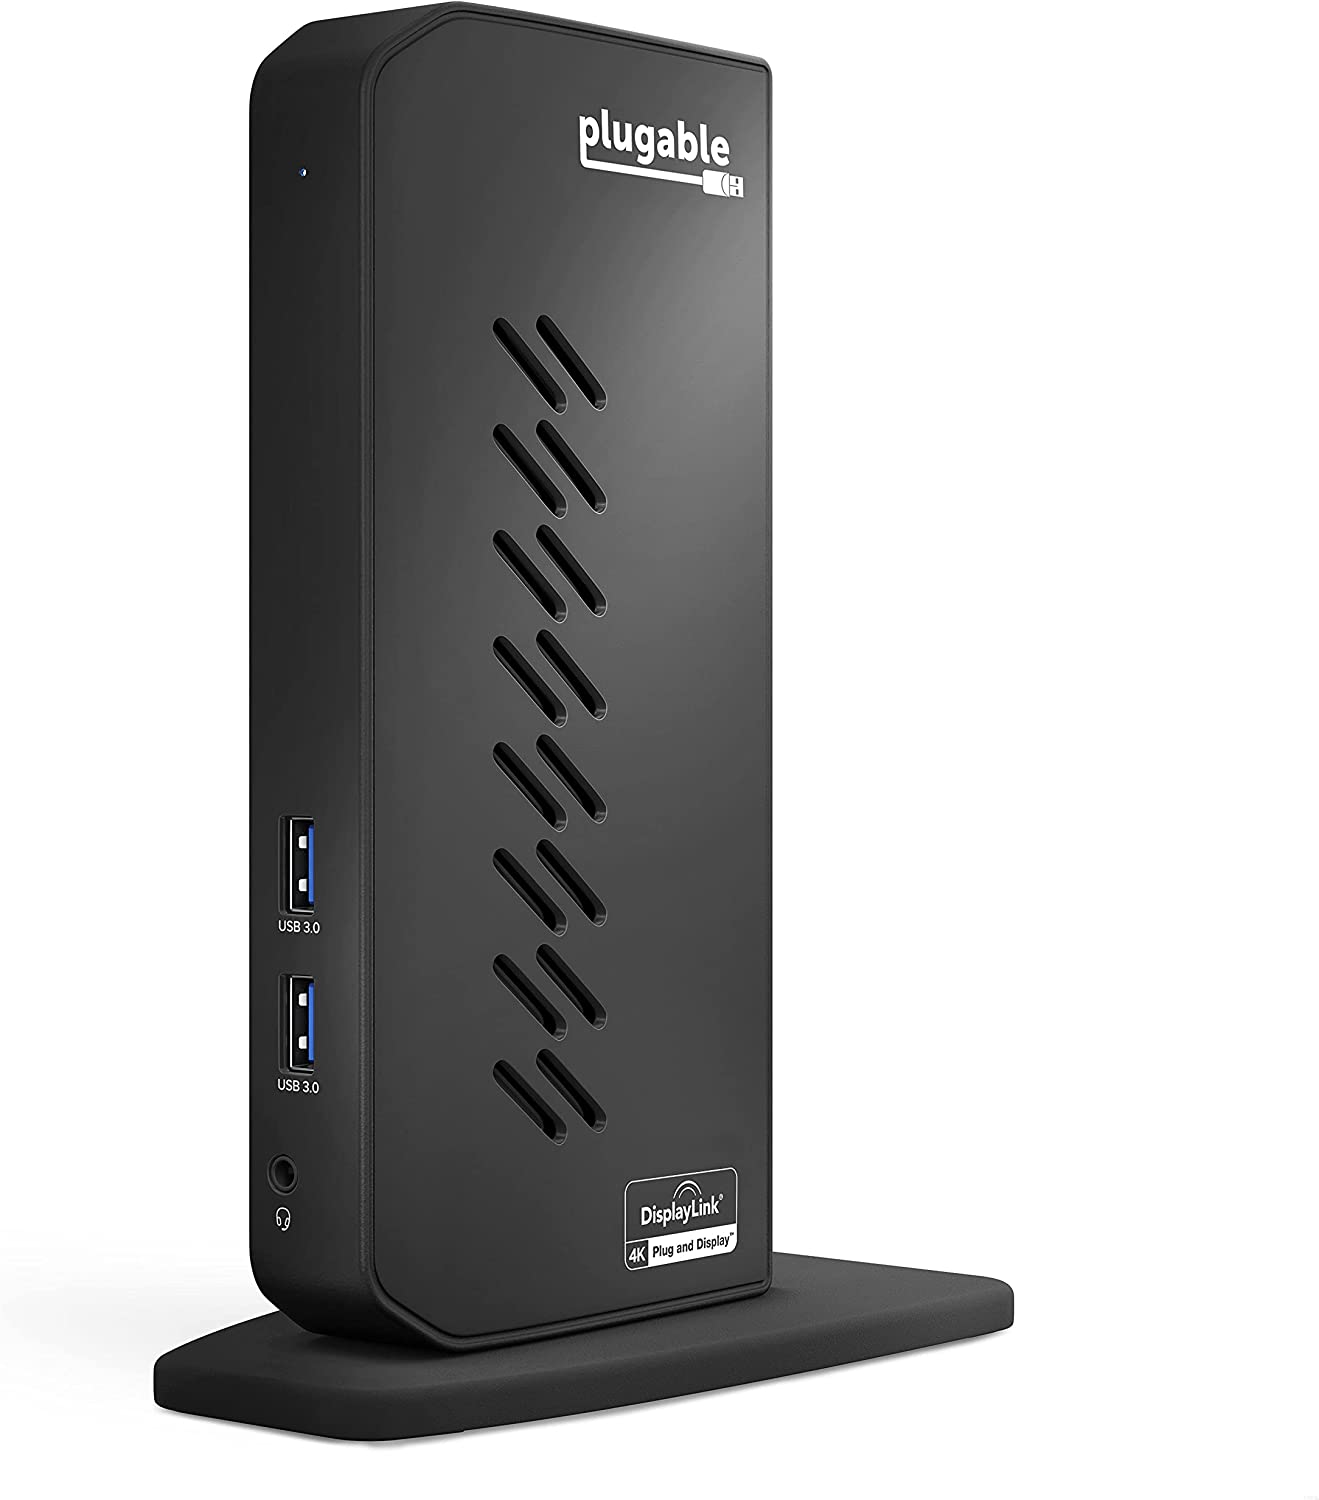 Plugable USB 3.0 and USB-C Dual 4K Display Docking Station with DisplayPort and HDMI for Windows and Mac (Dual 4K DisplayPort & HDMI, Gigabit Ethernet, Audio, 6 USB Ports) Vertical